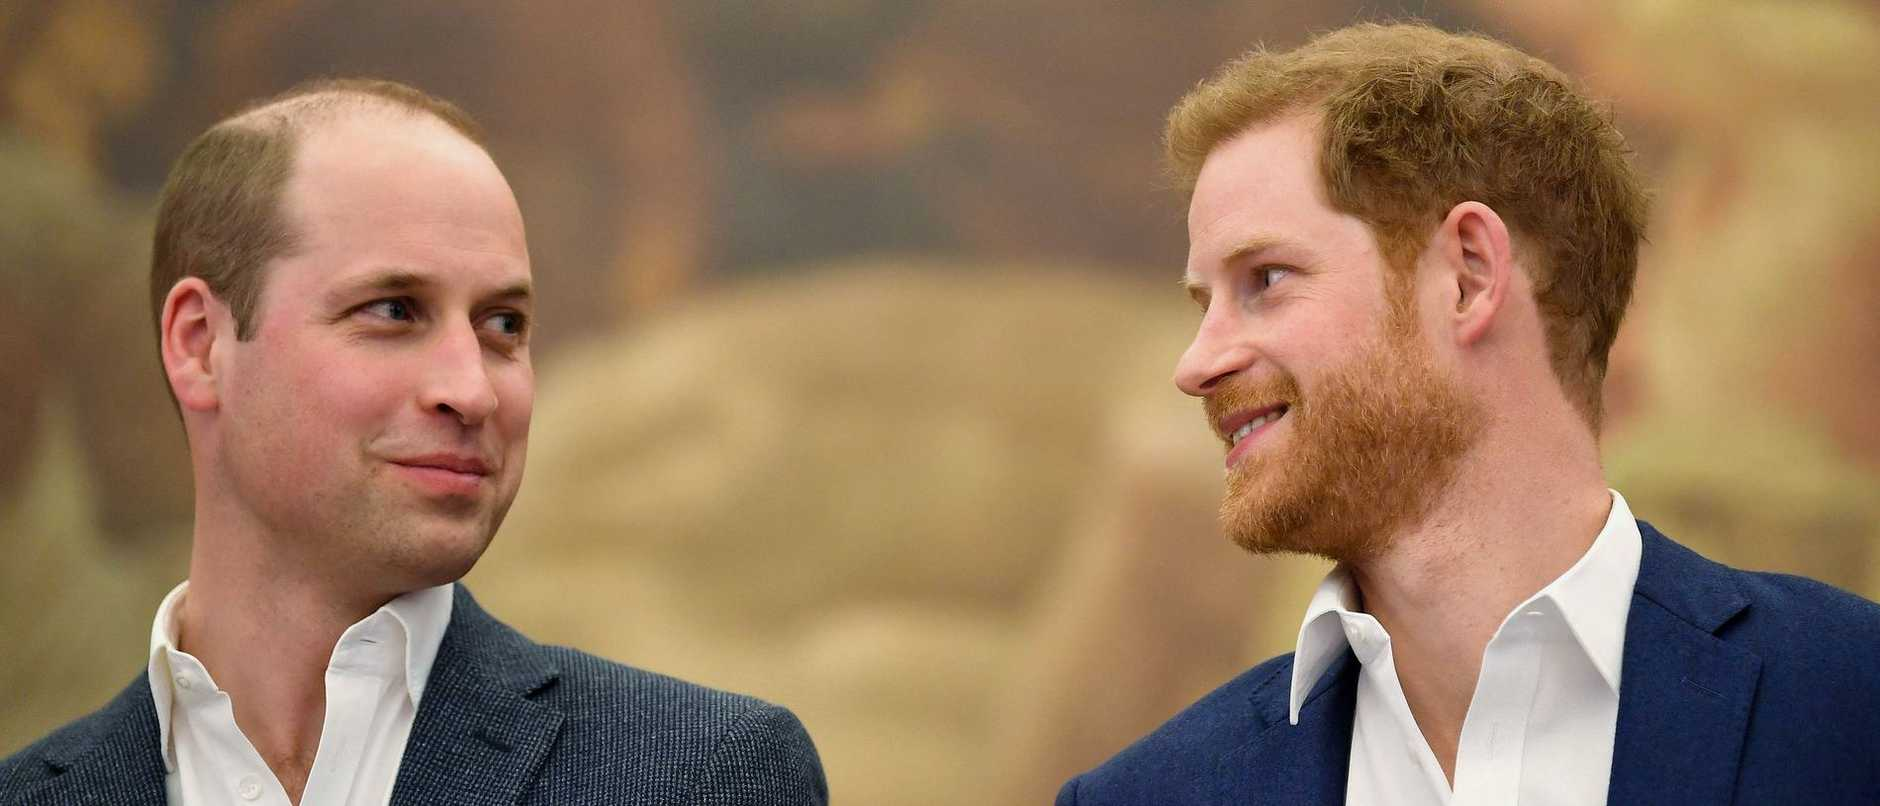 The move is a rare sign of public unity for the brothers since Prince Harry and his wife, Meghan Markle, left the royal family.